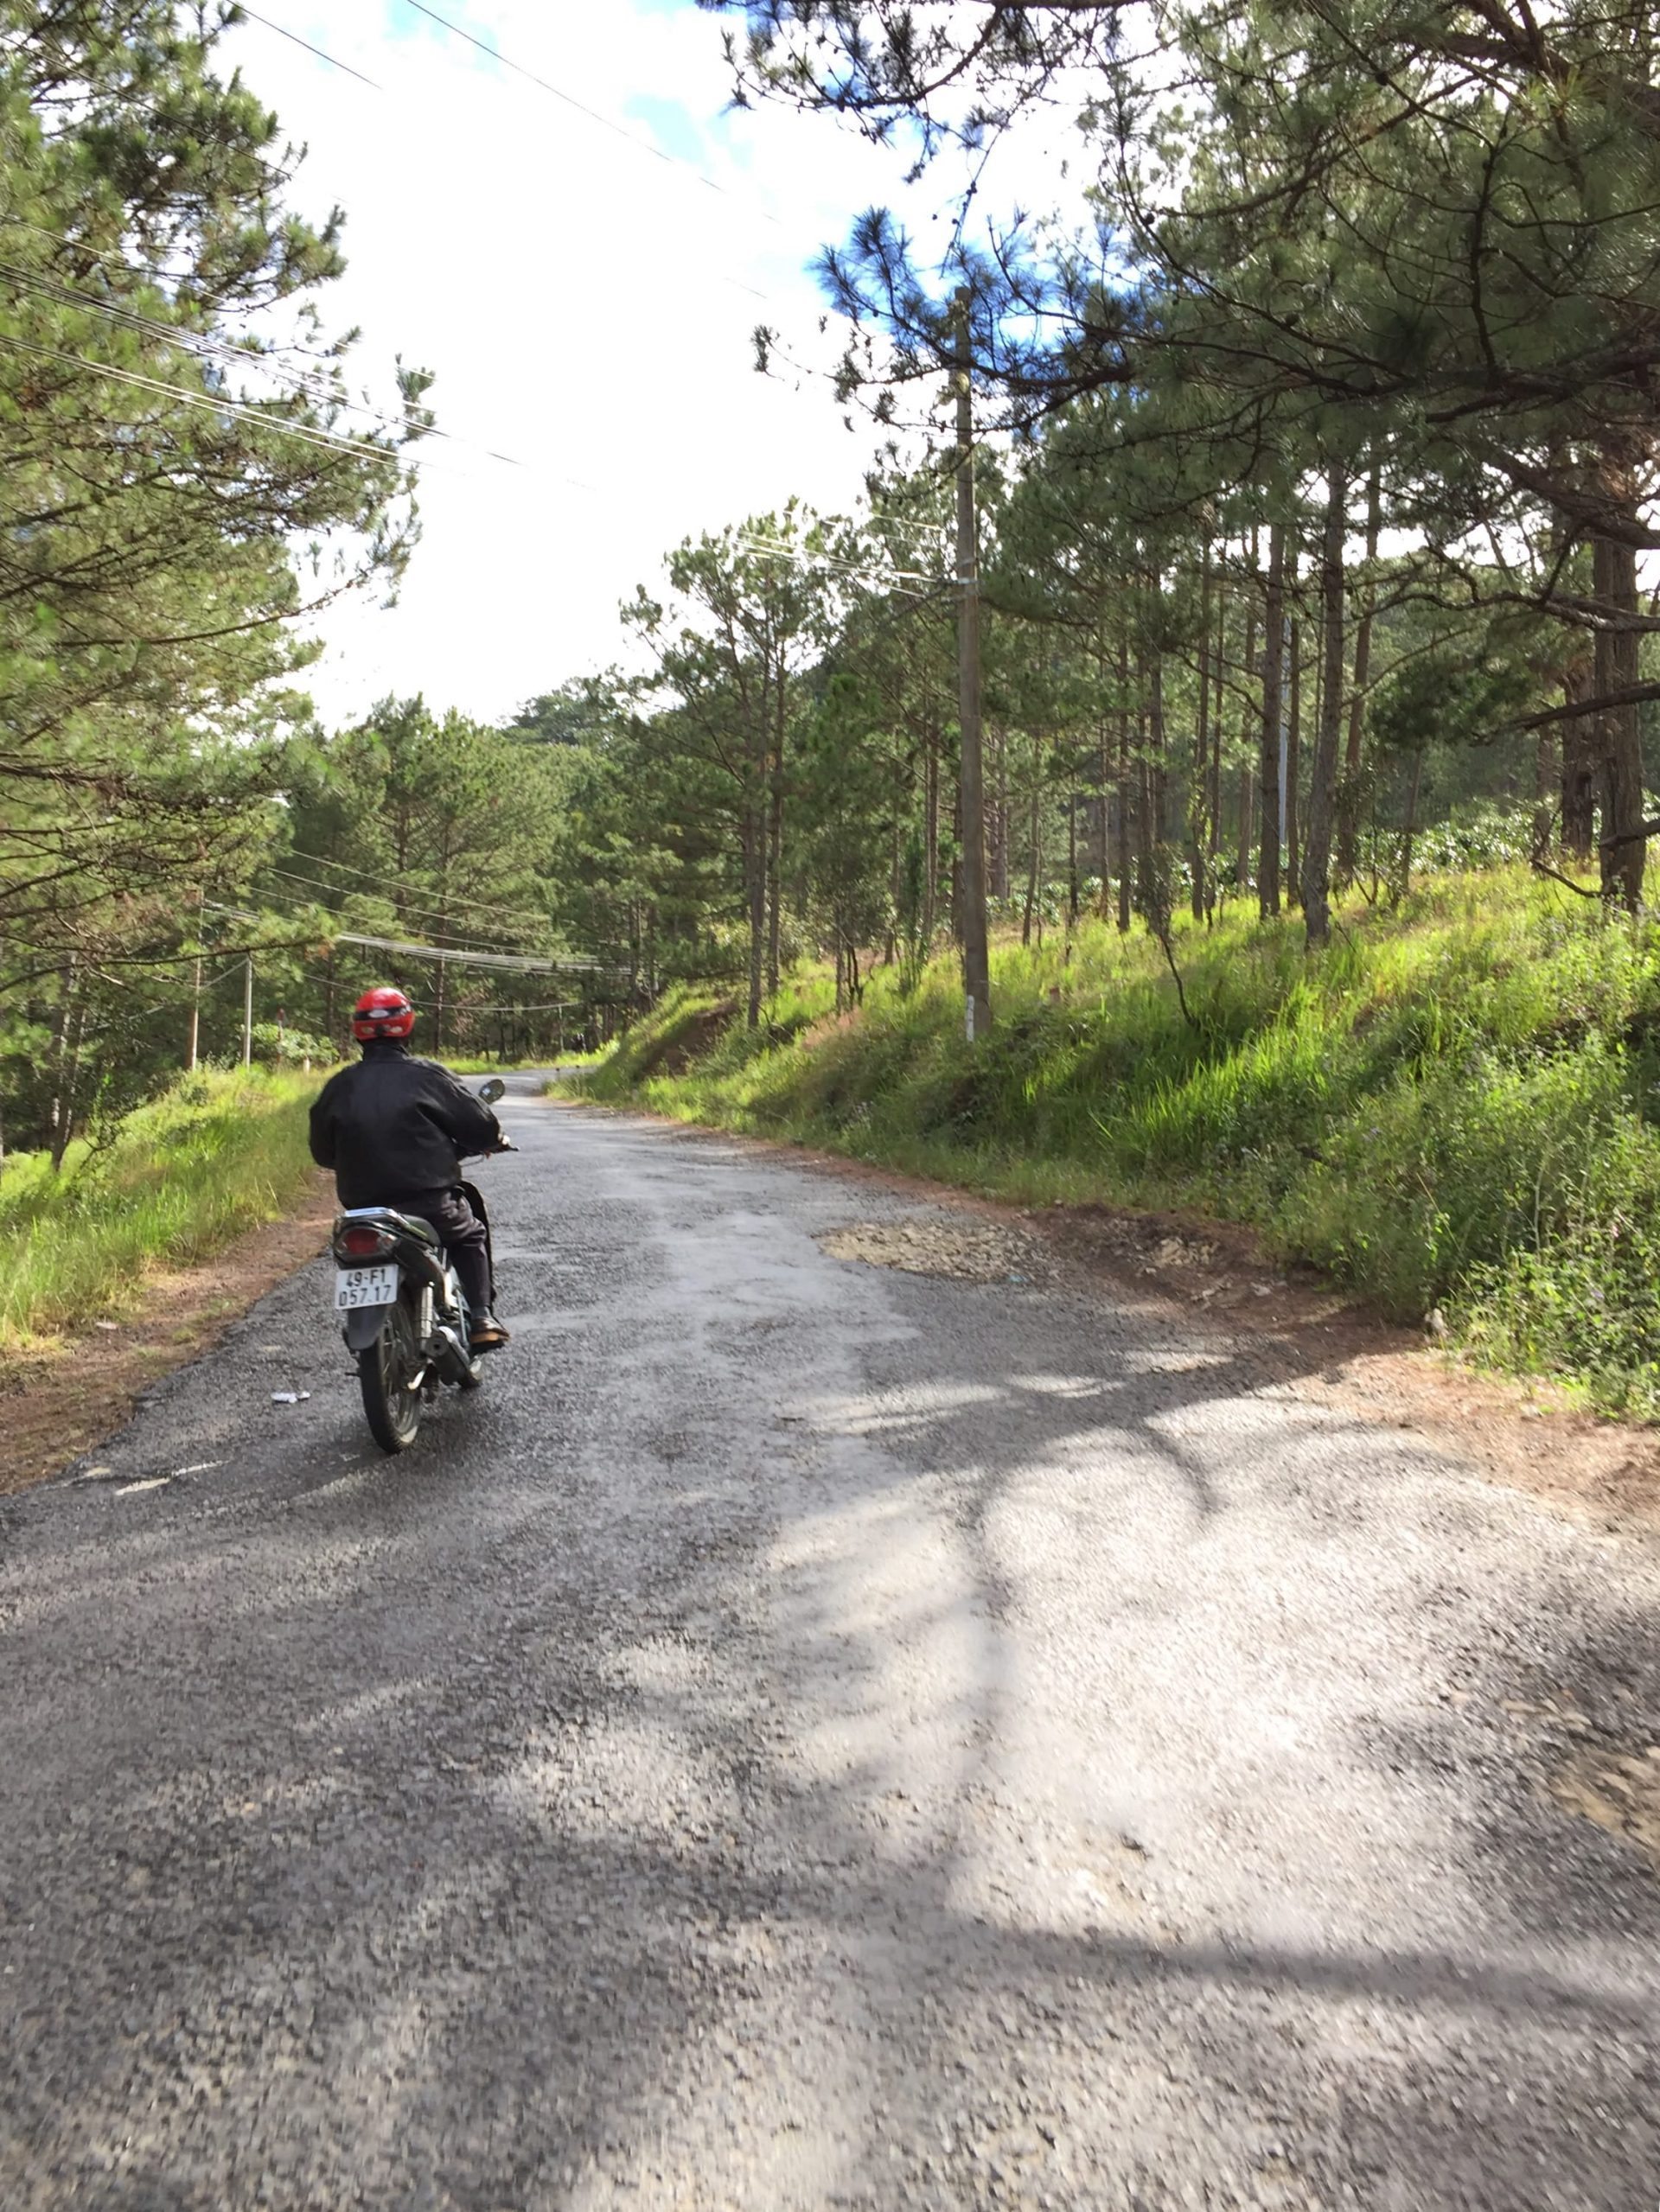 A man riding a motorbike in the pass of Dalat city